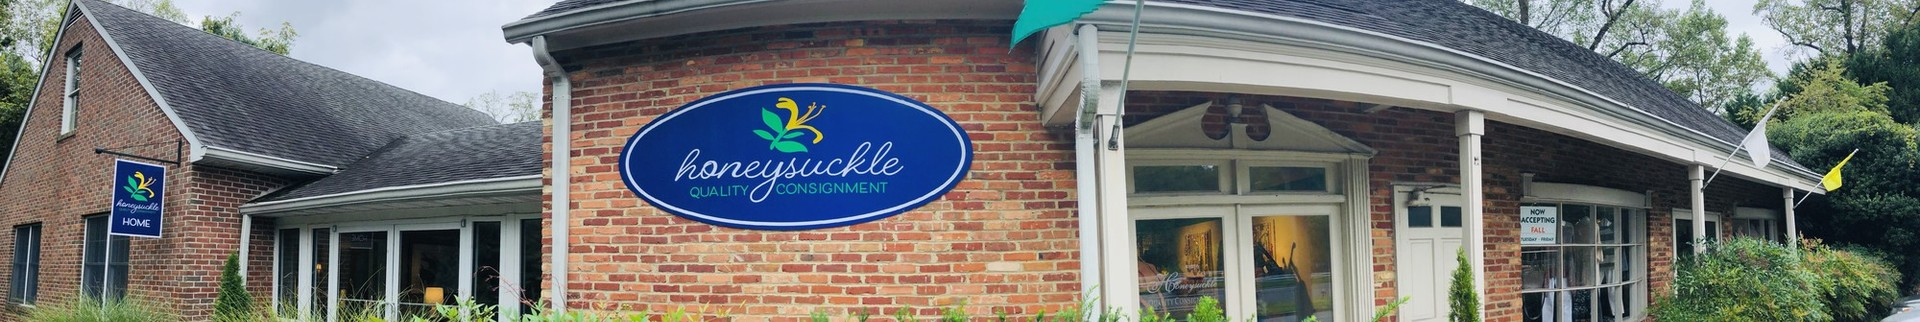 Honeysuckle Quality Consignment's banner image.